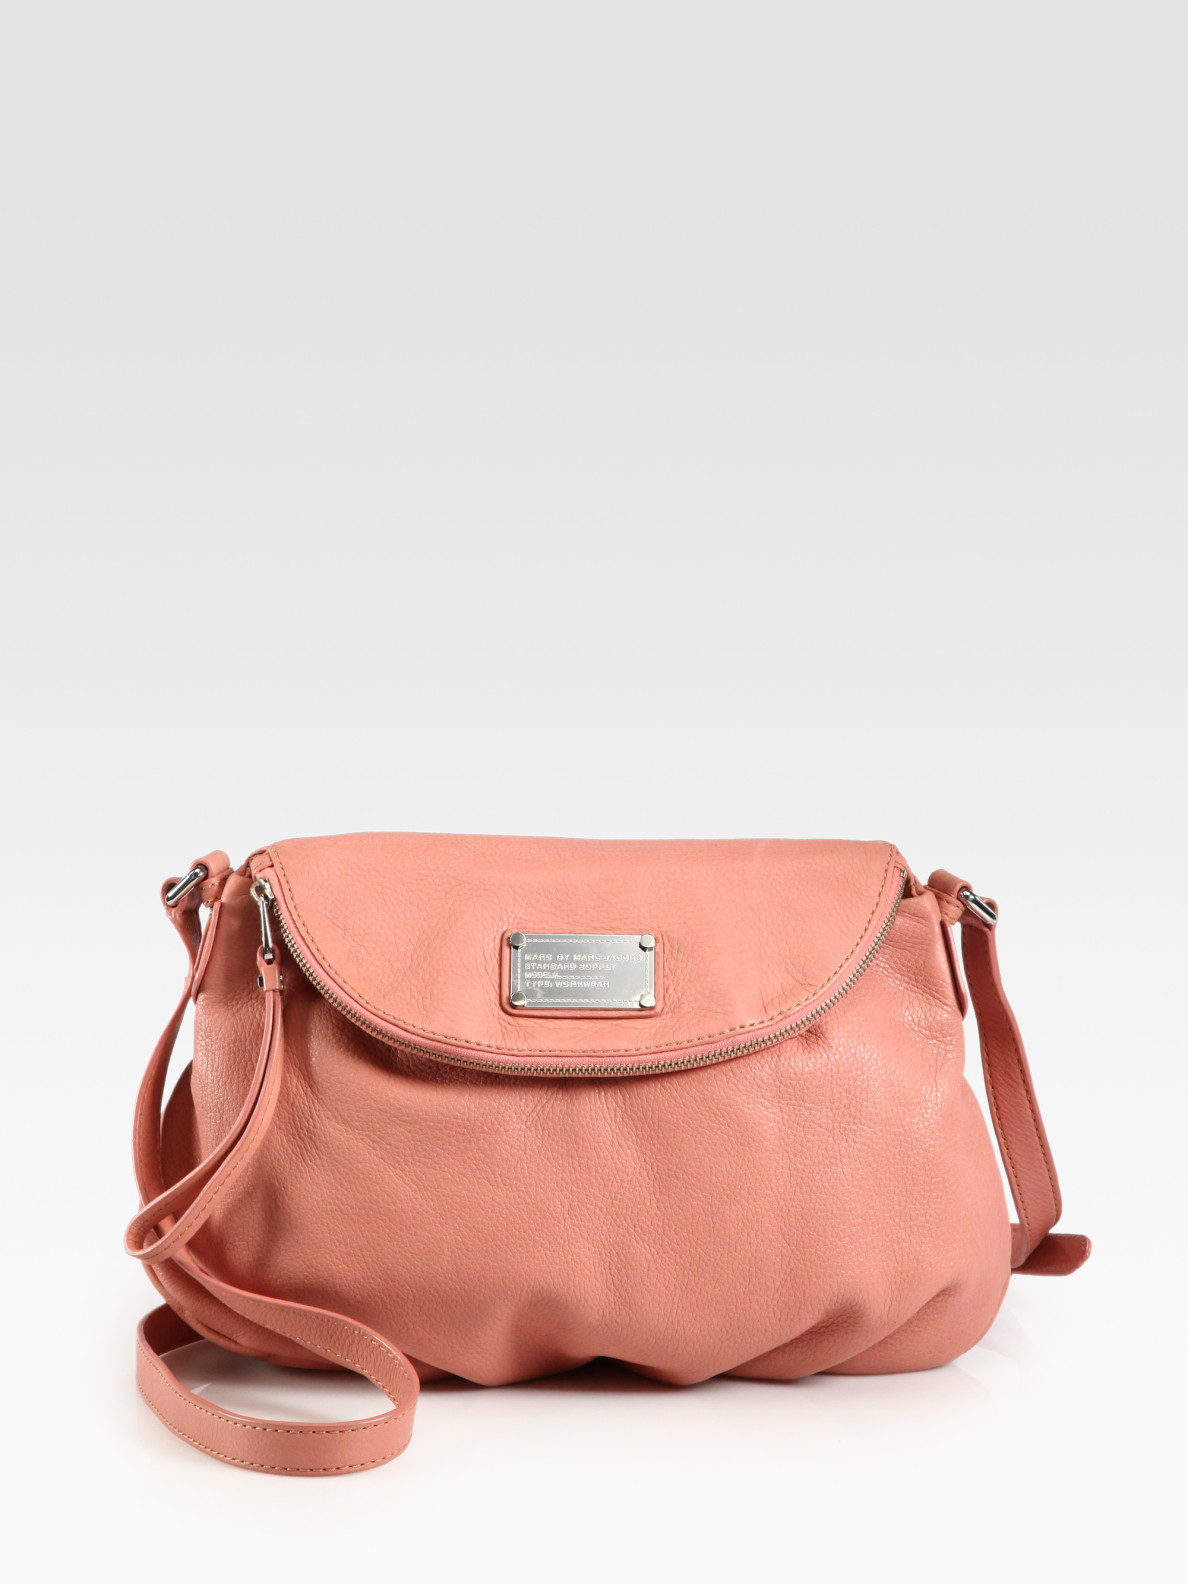 2af20a863c8 Gallery. Previously sold at: Saks Fifth Avenue · Women's Marc Jacobs Natasha